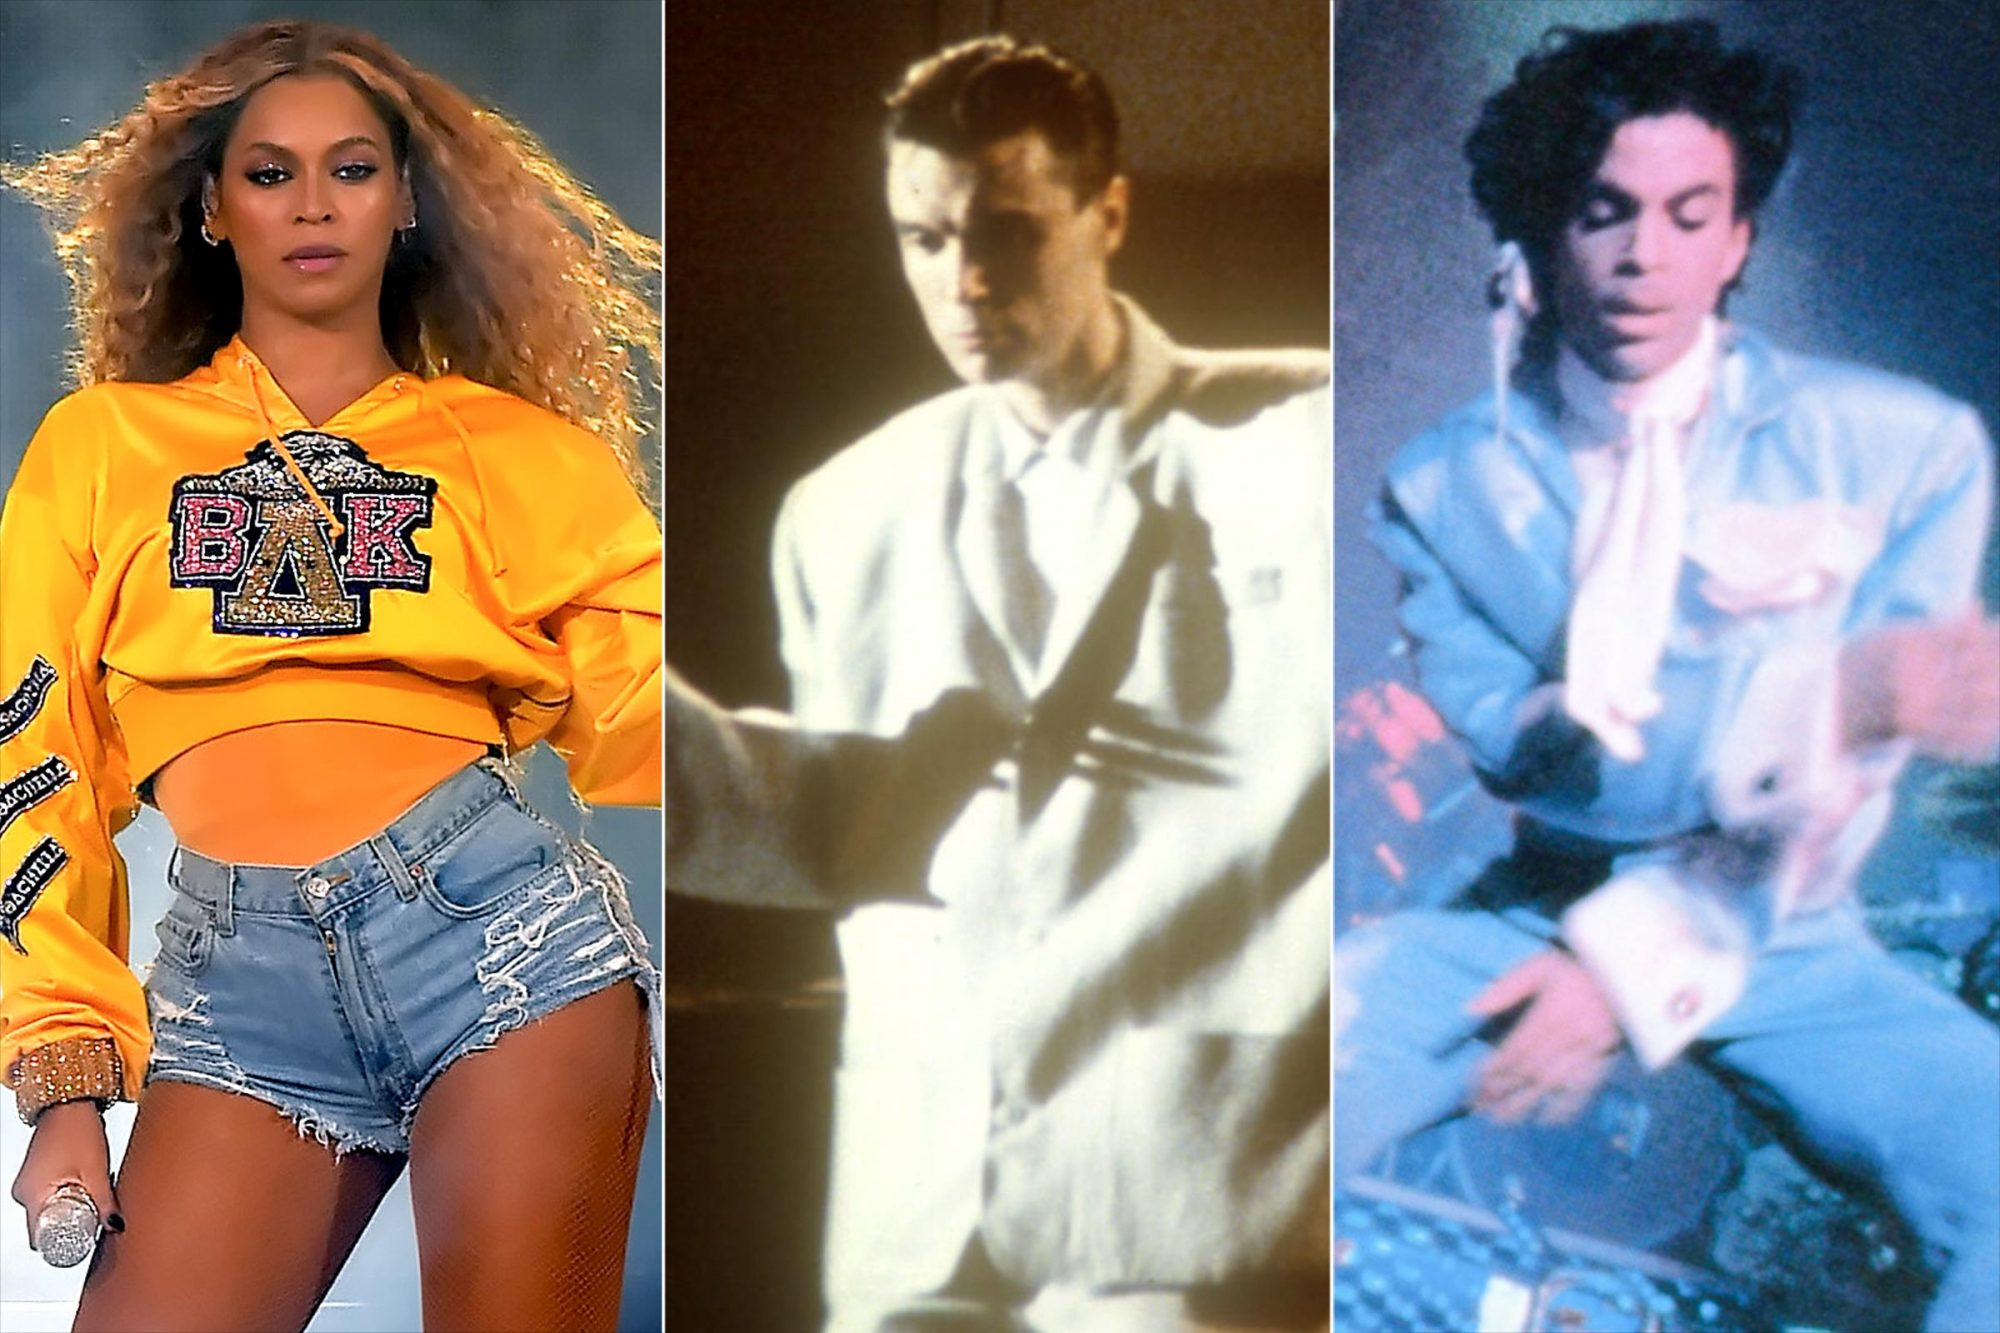 Beyonce in Beychella, David Byrne in Stop Making Sense, and Prince in Sign O The Times